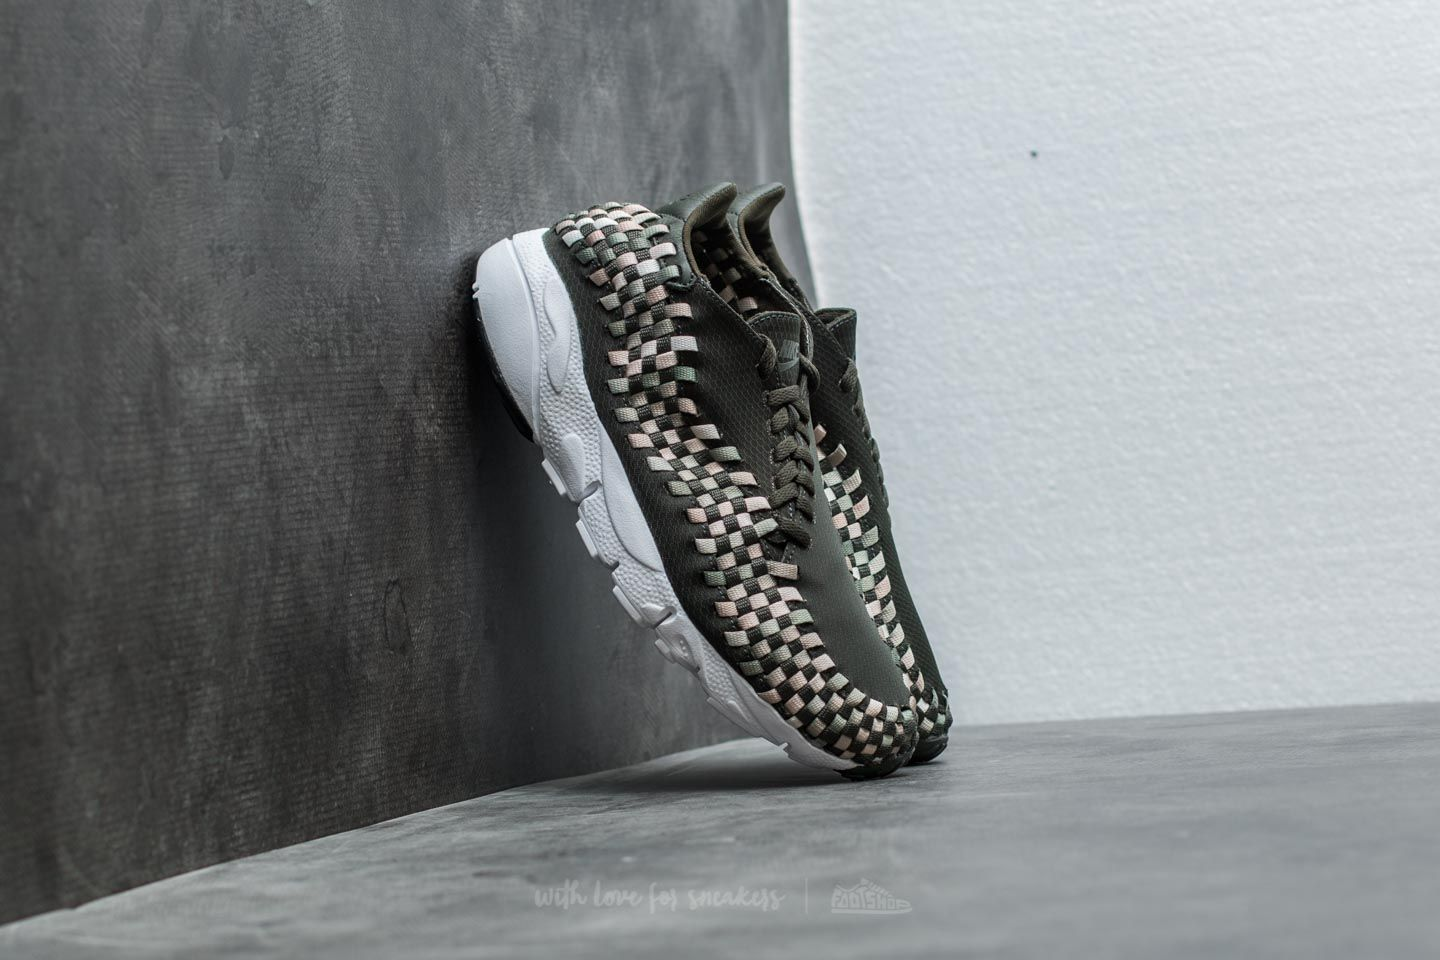 Nike Air Footscape Woven Black Lifestyle Shoes For Women